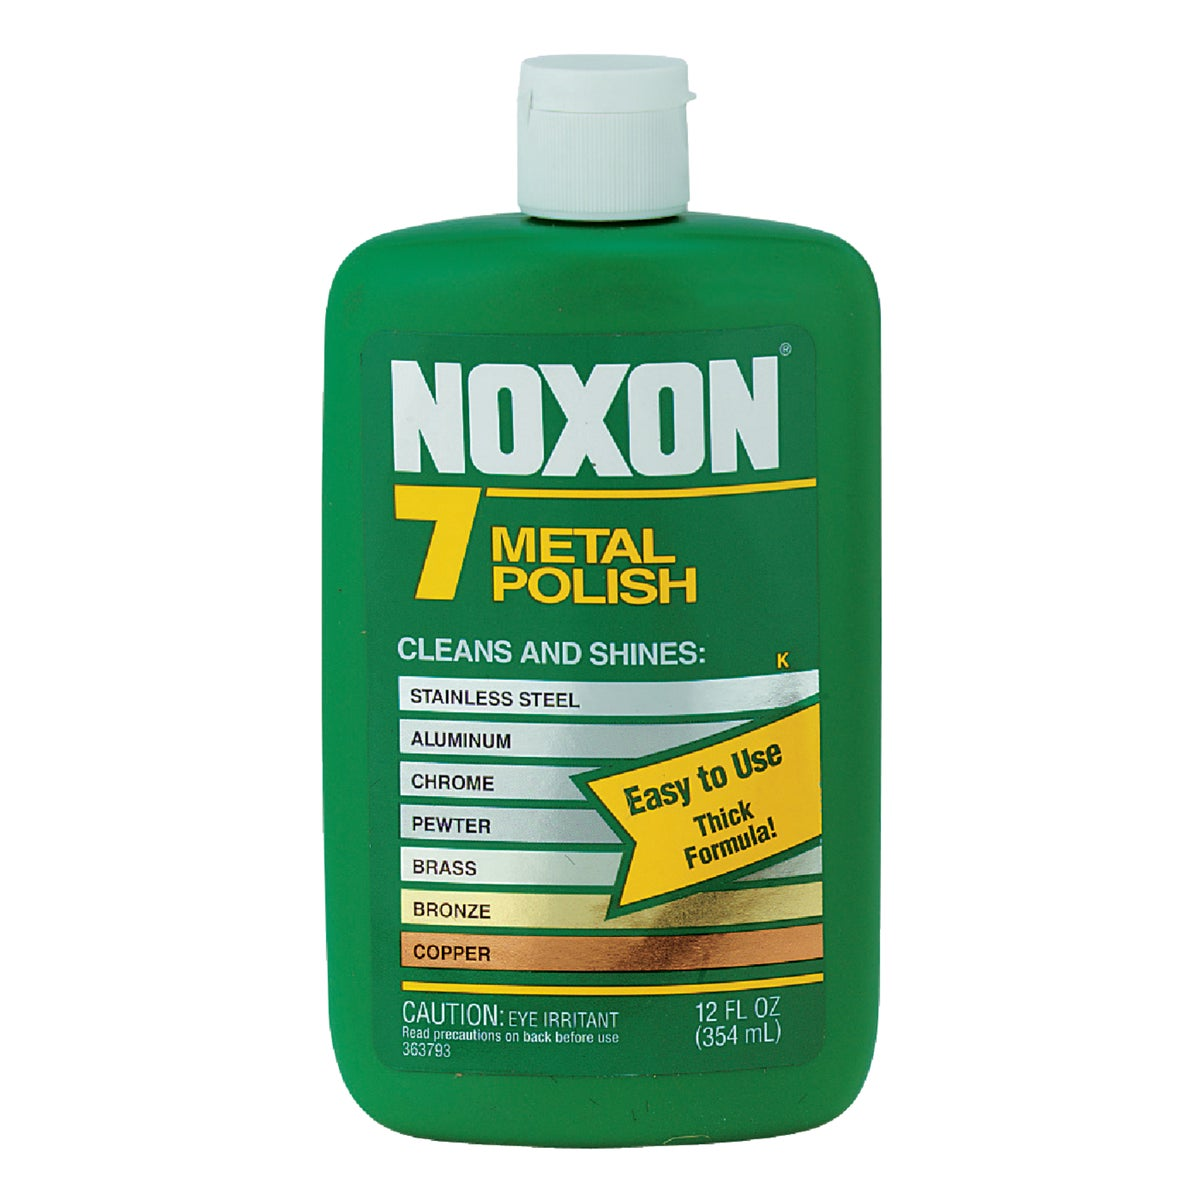 12OZ NOXON METAL POLISH - 6233800117 by Reckitt Benckiser